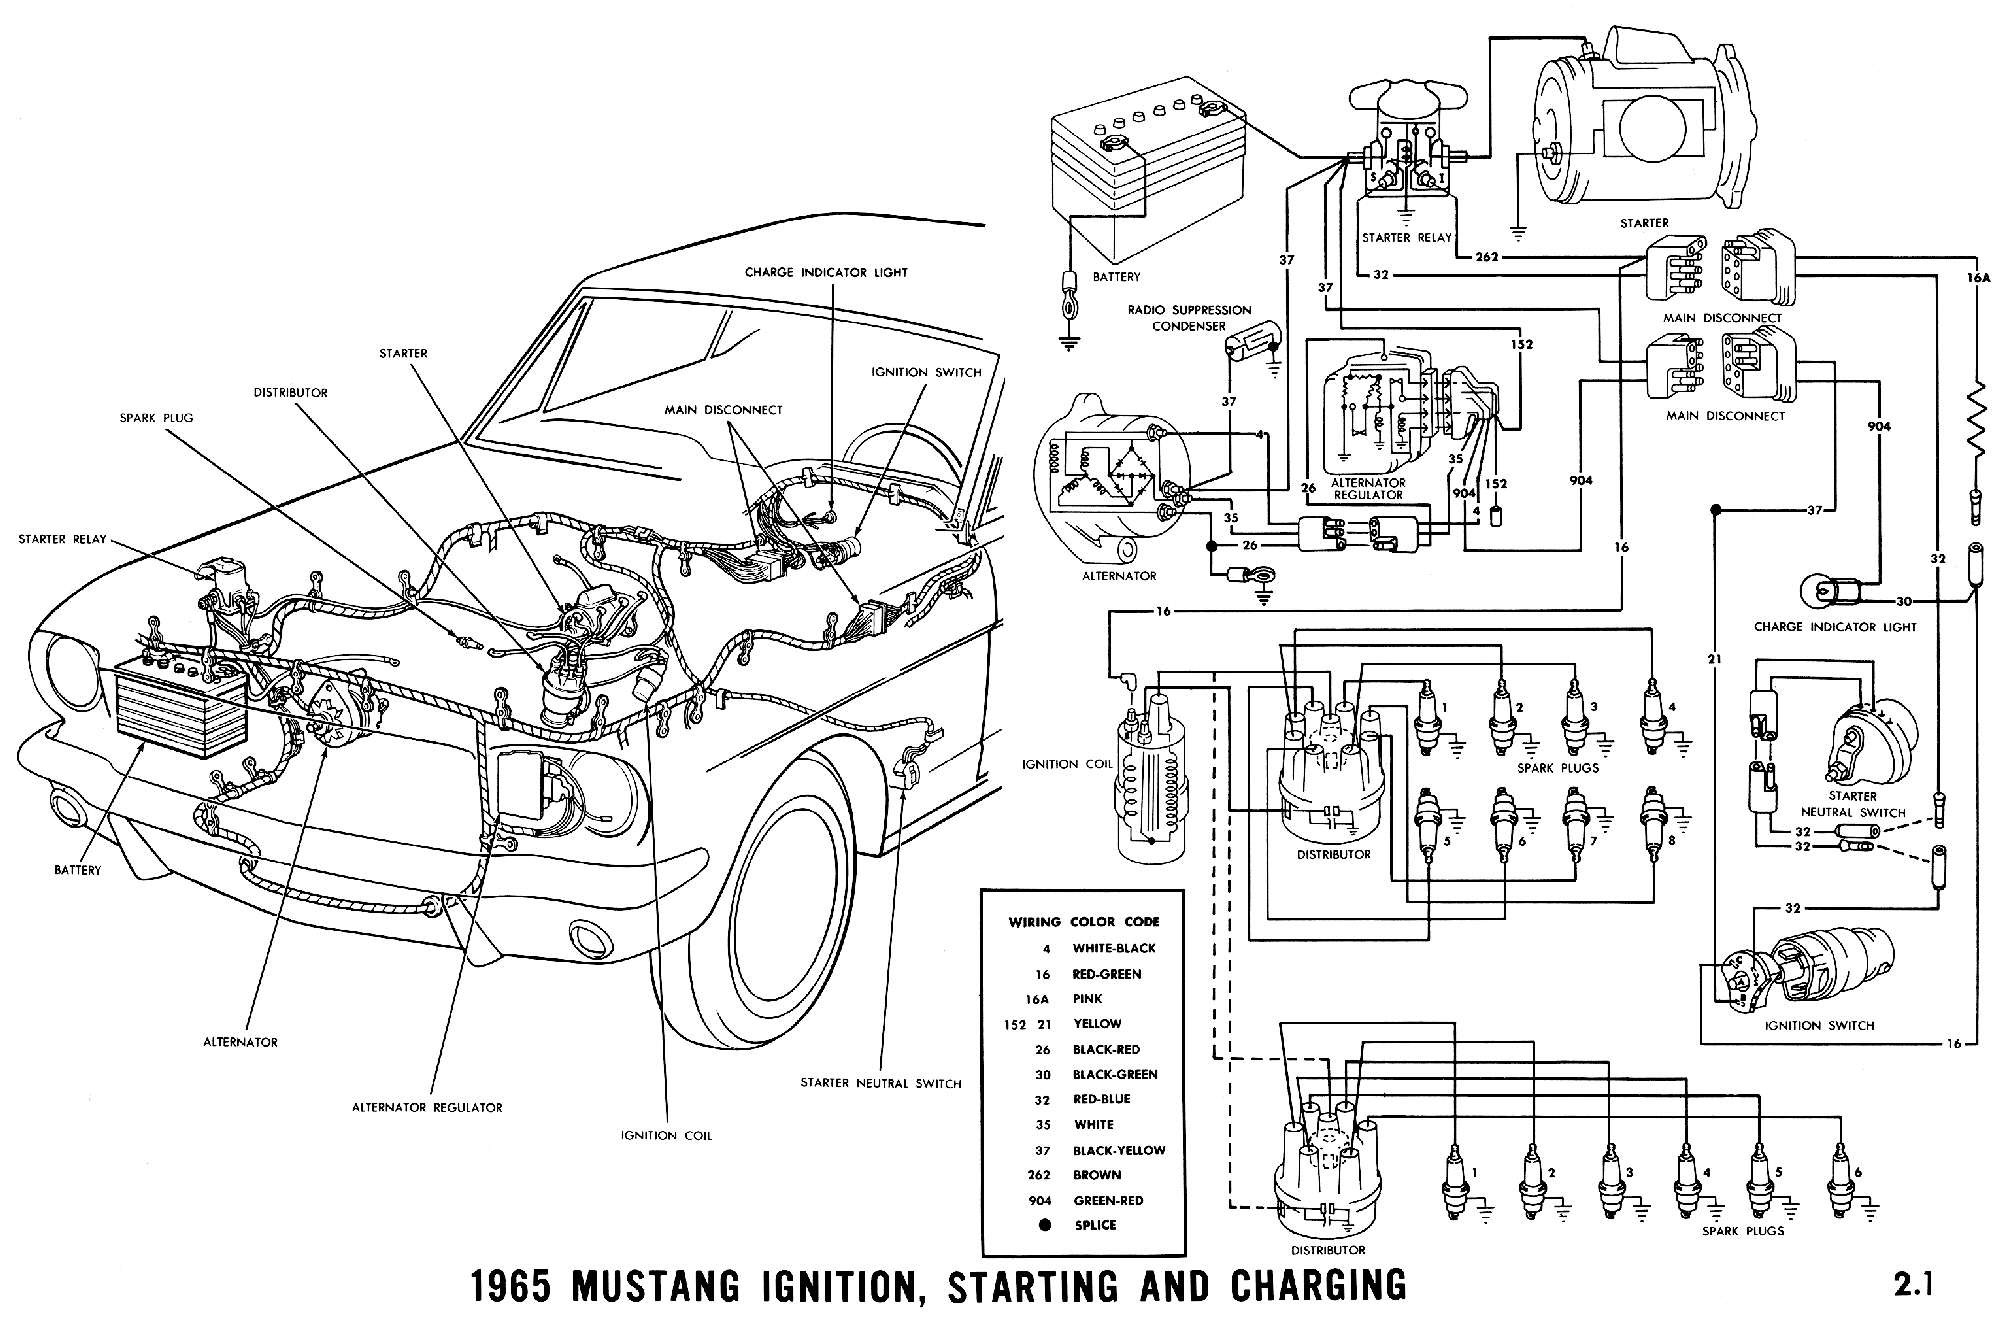 Diagram Of An Engine 2015 Mustang Engine Diagram Engine Car Parts and Ponent Diagram Of Diagram Of An Engine